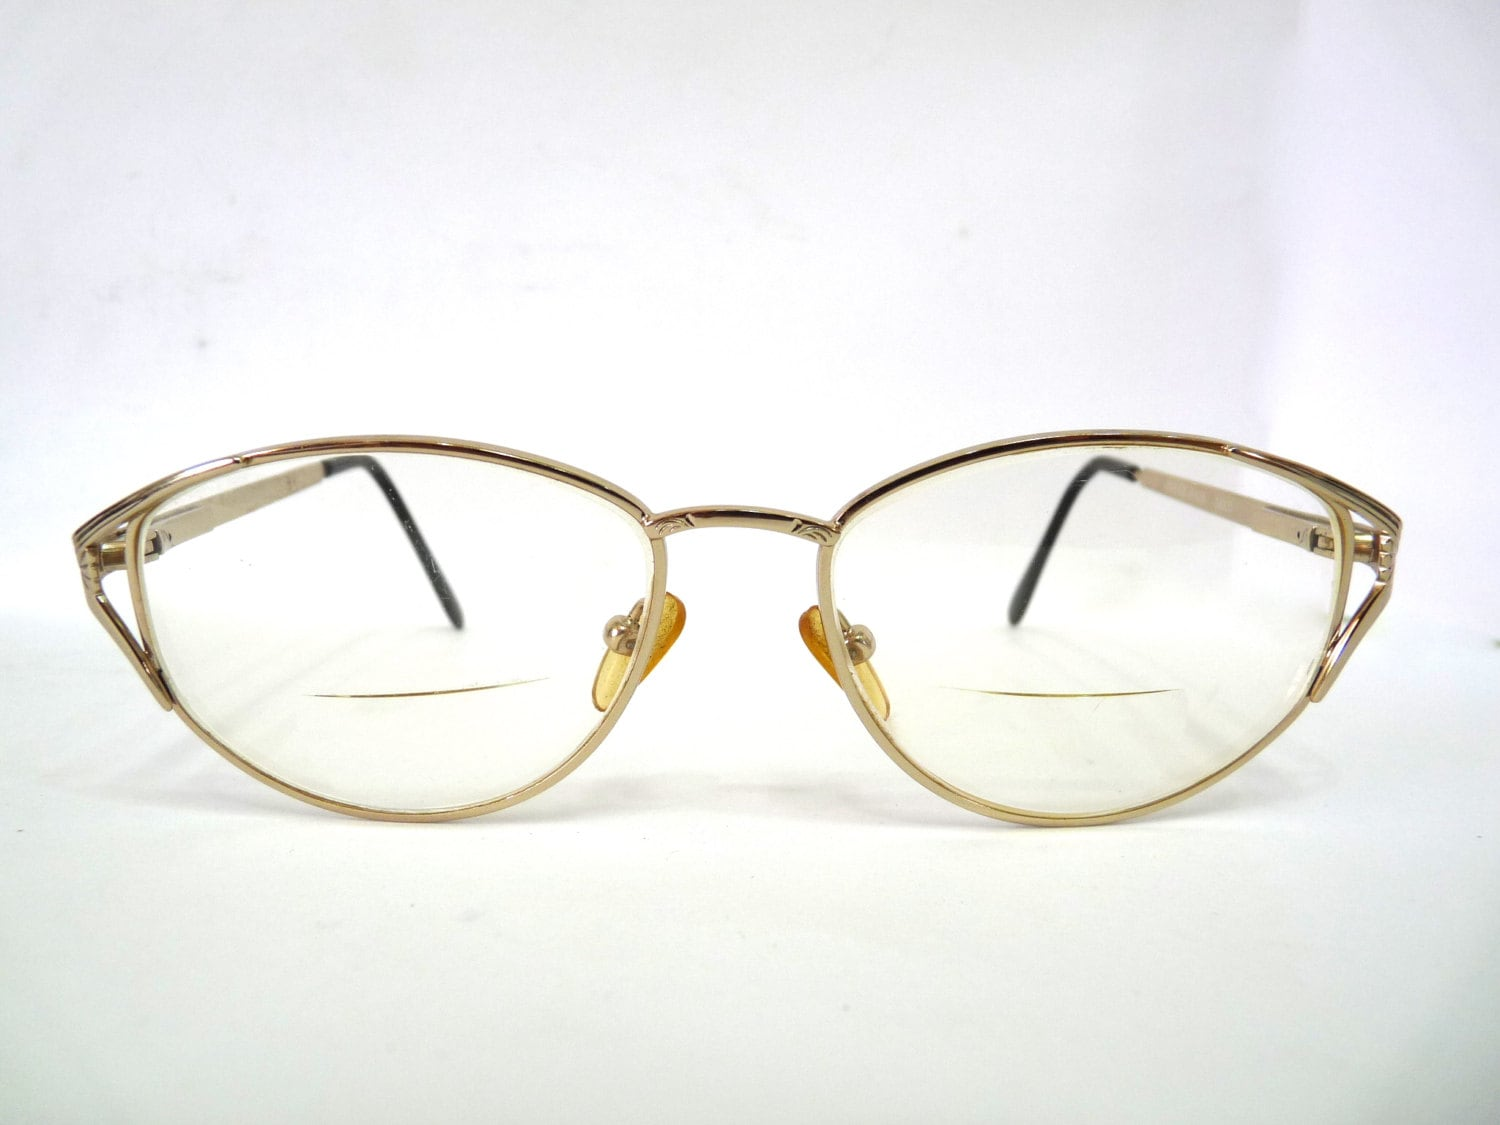 Vintage Cat-Eye Glasses Prescription Eyeglasses by ...